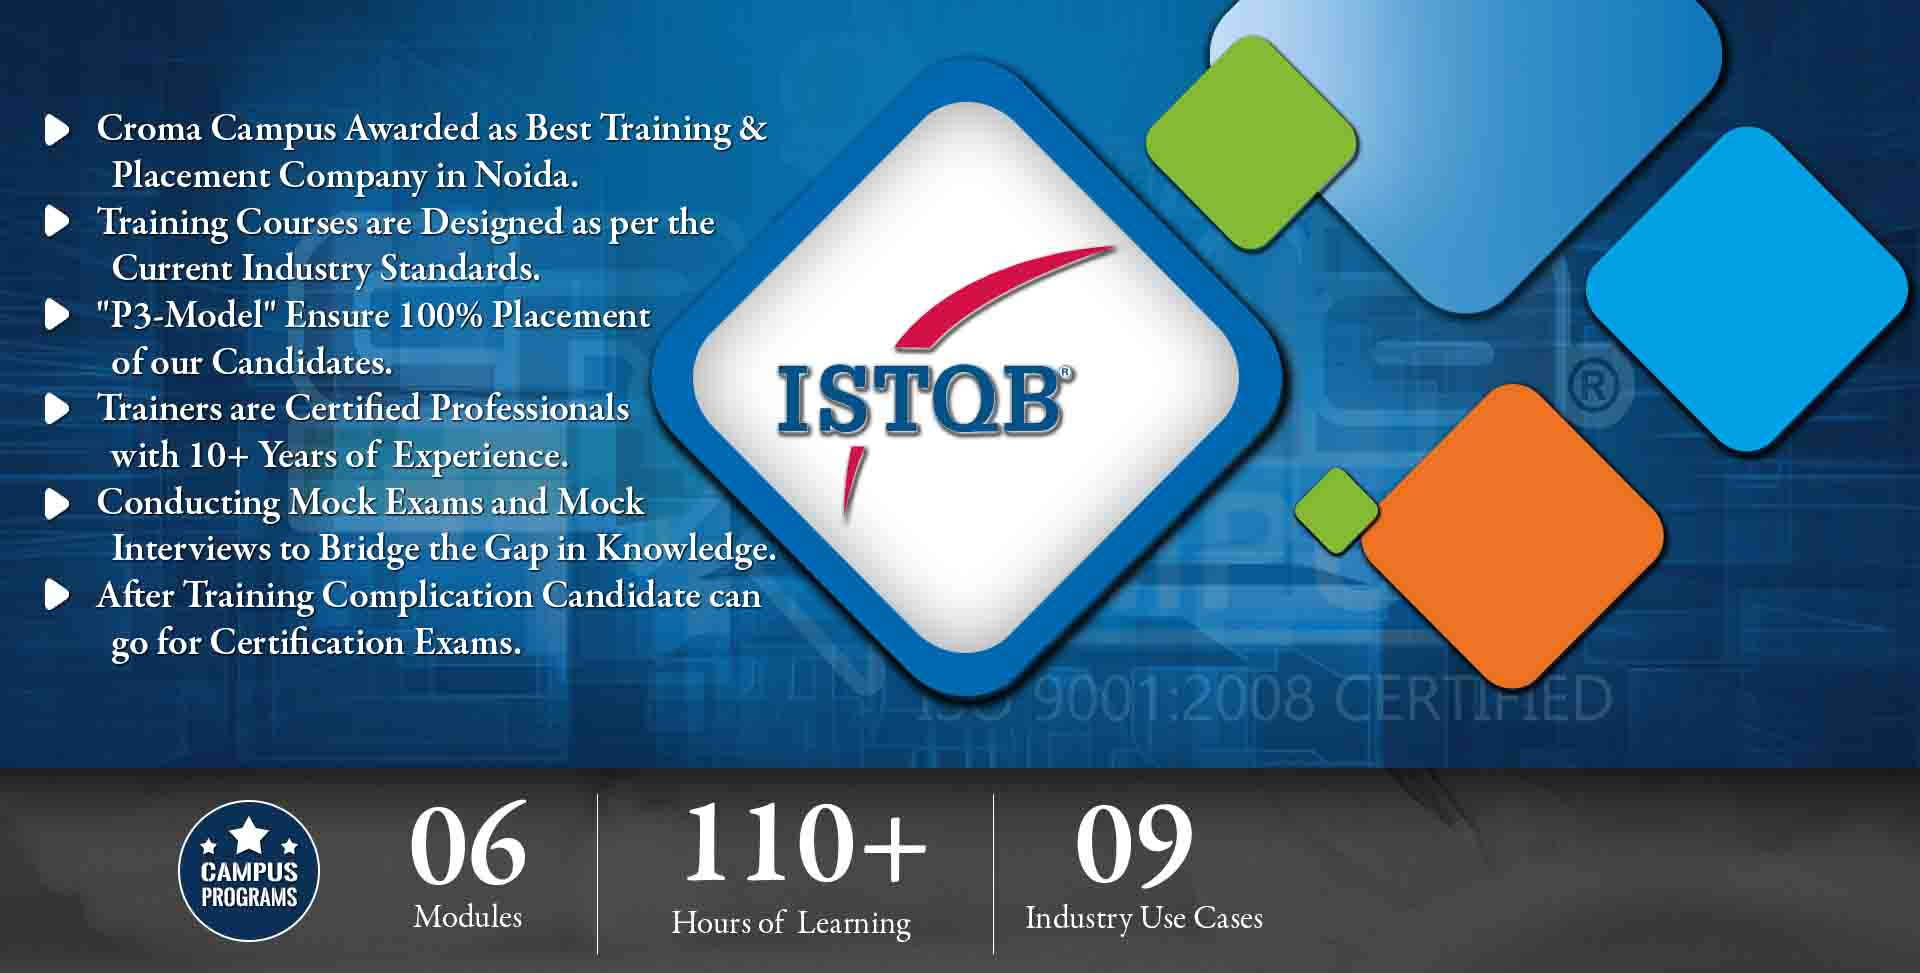 ISTQB Training in Delhi NCR- Croma Campus